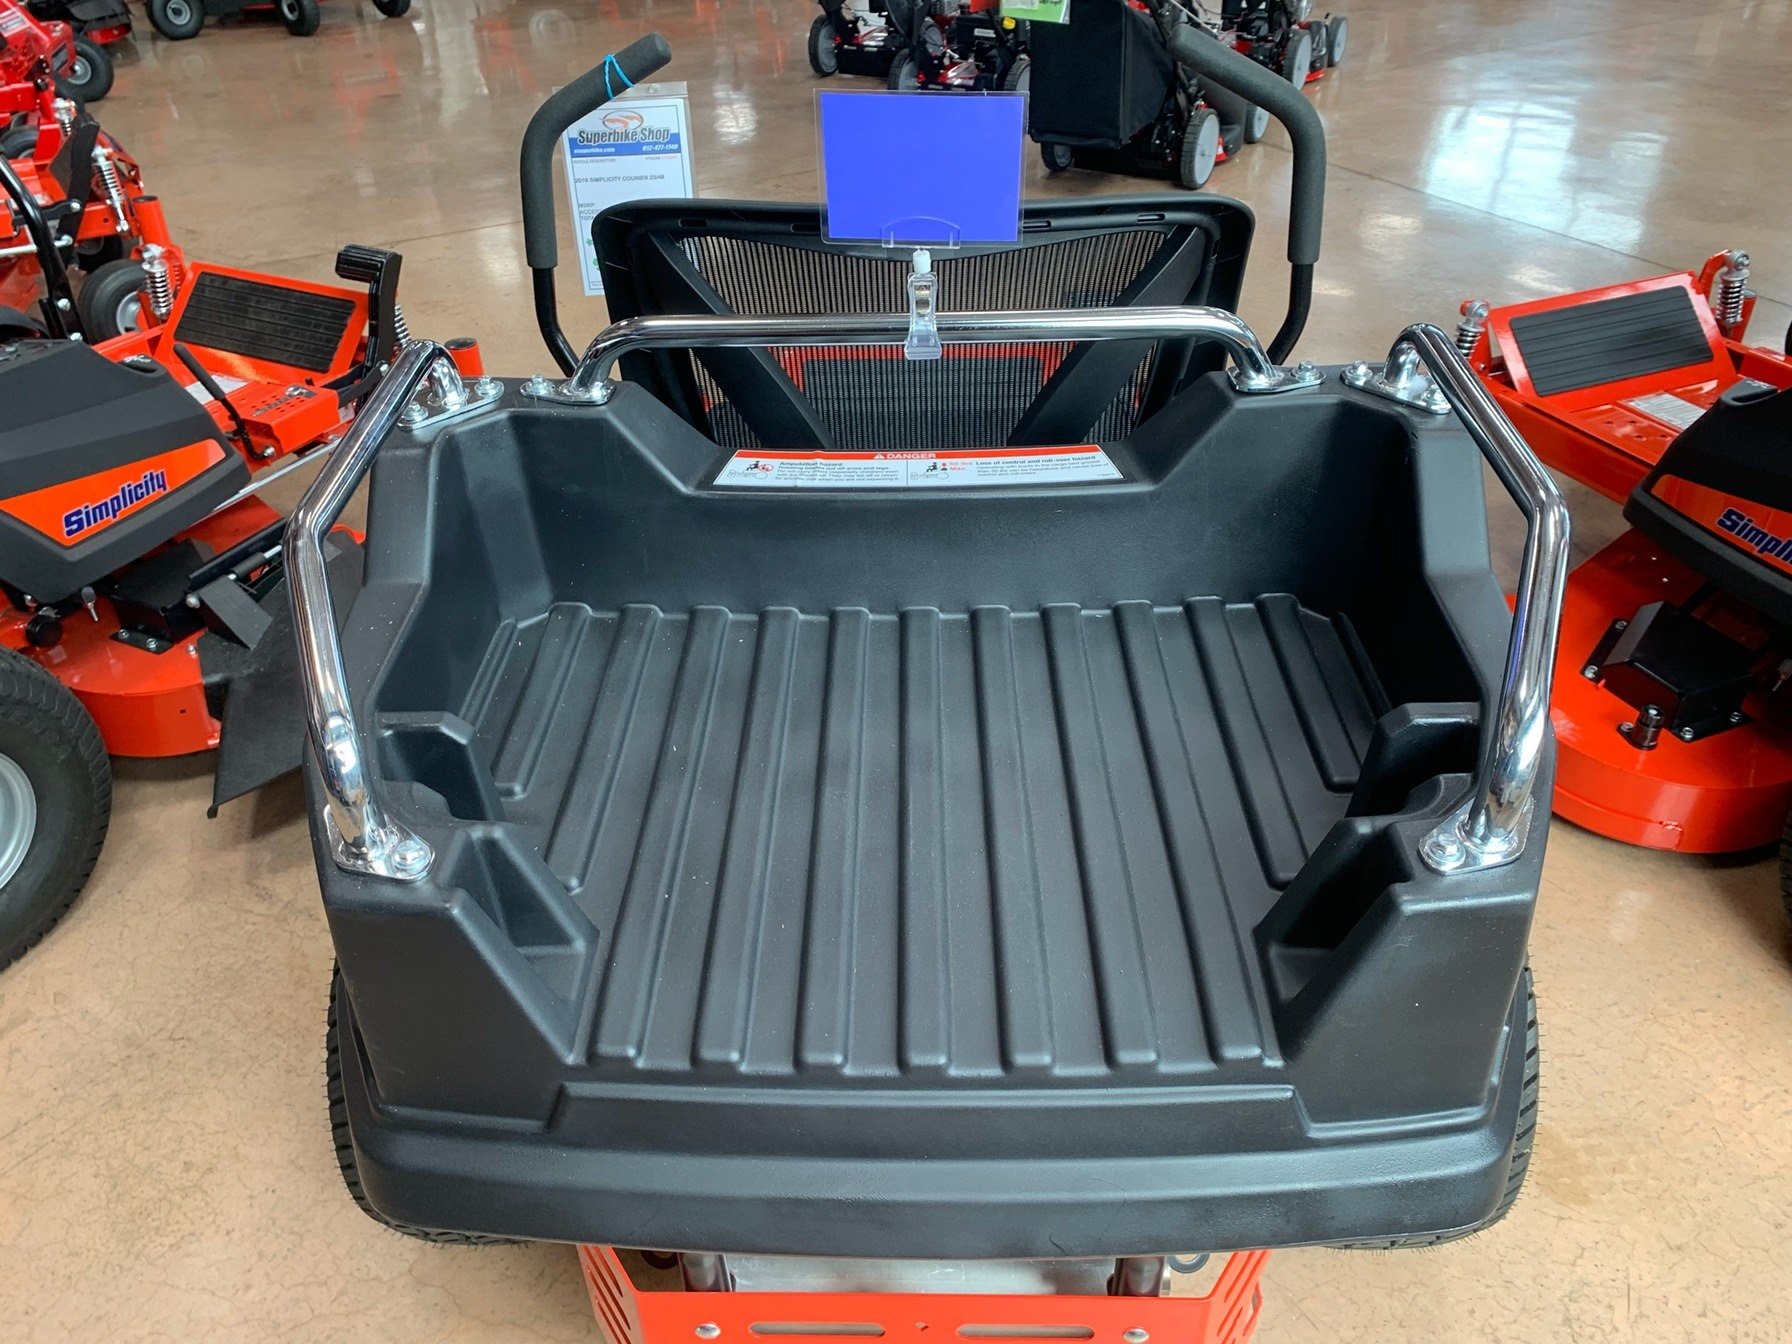 2019 Simplicity Courier 48 in. Briggs & Stratton 23 hp in Evansville, Indiana - Photo 6